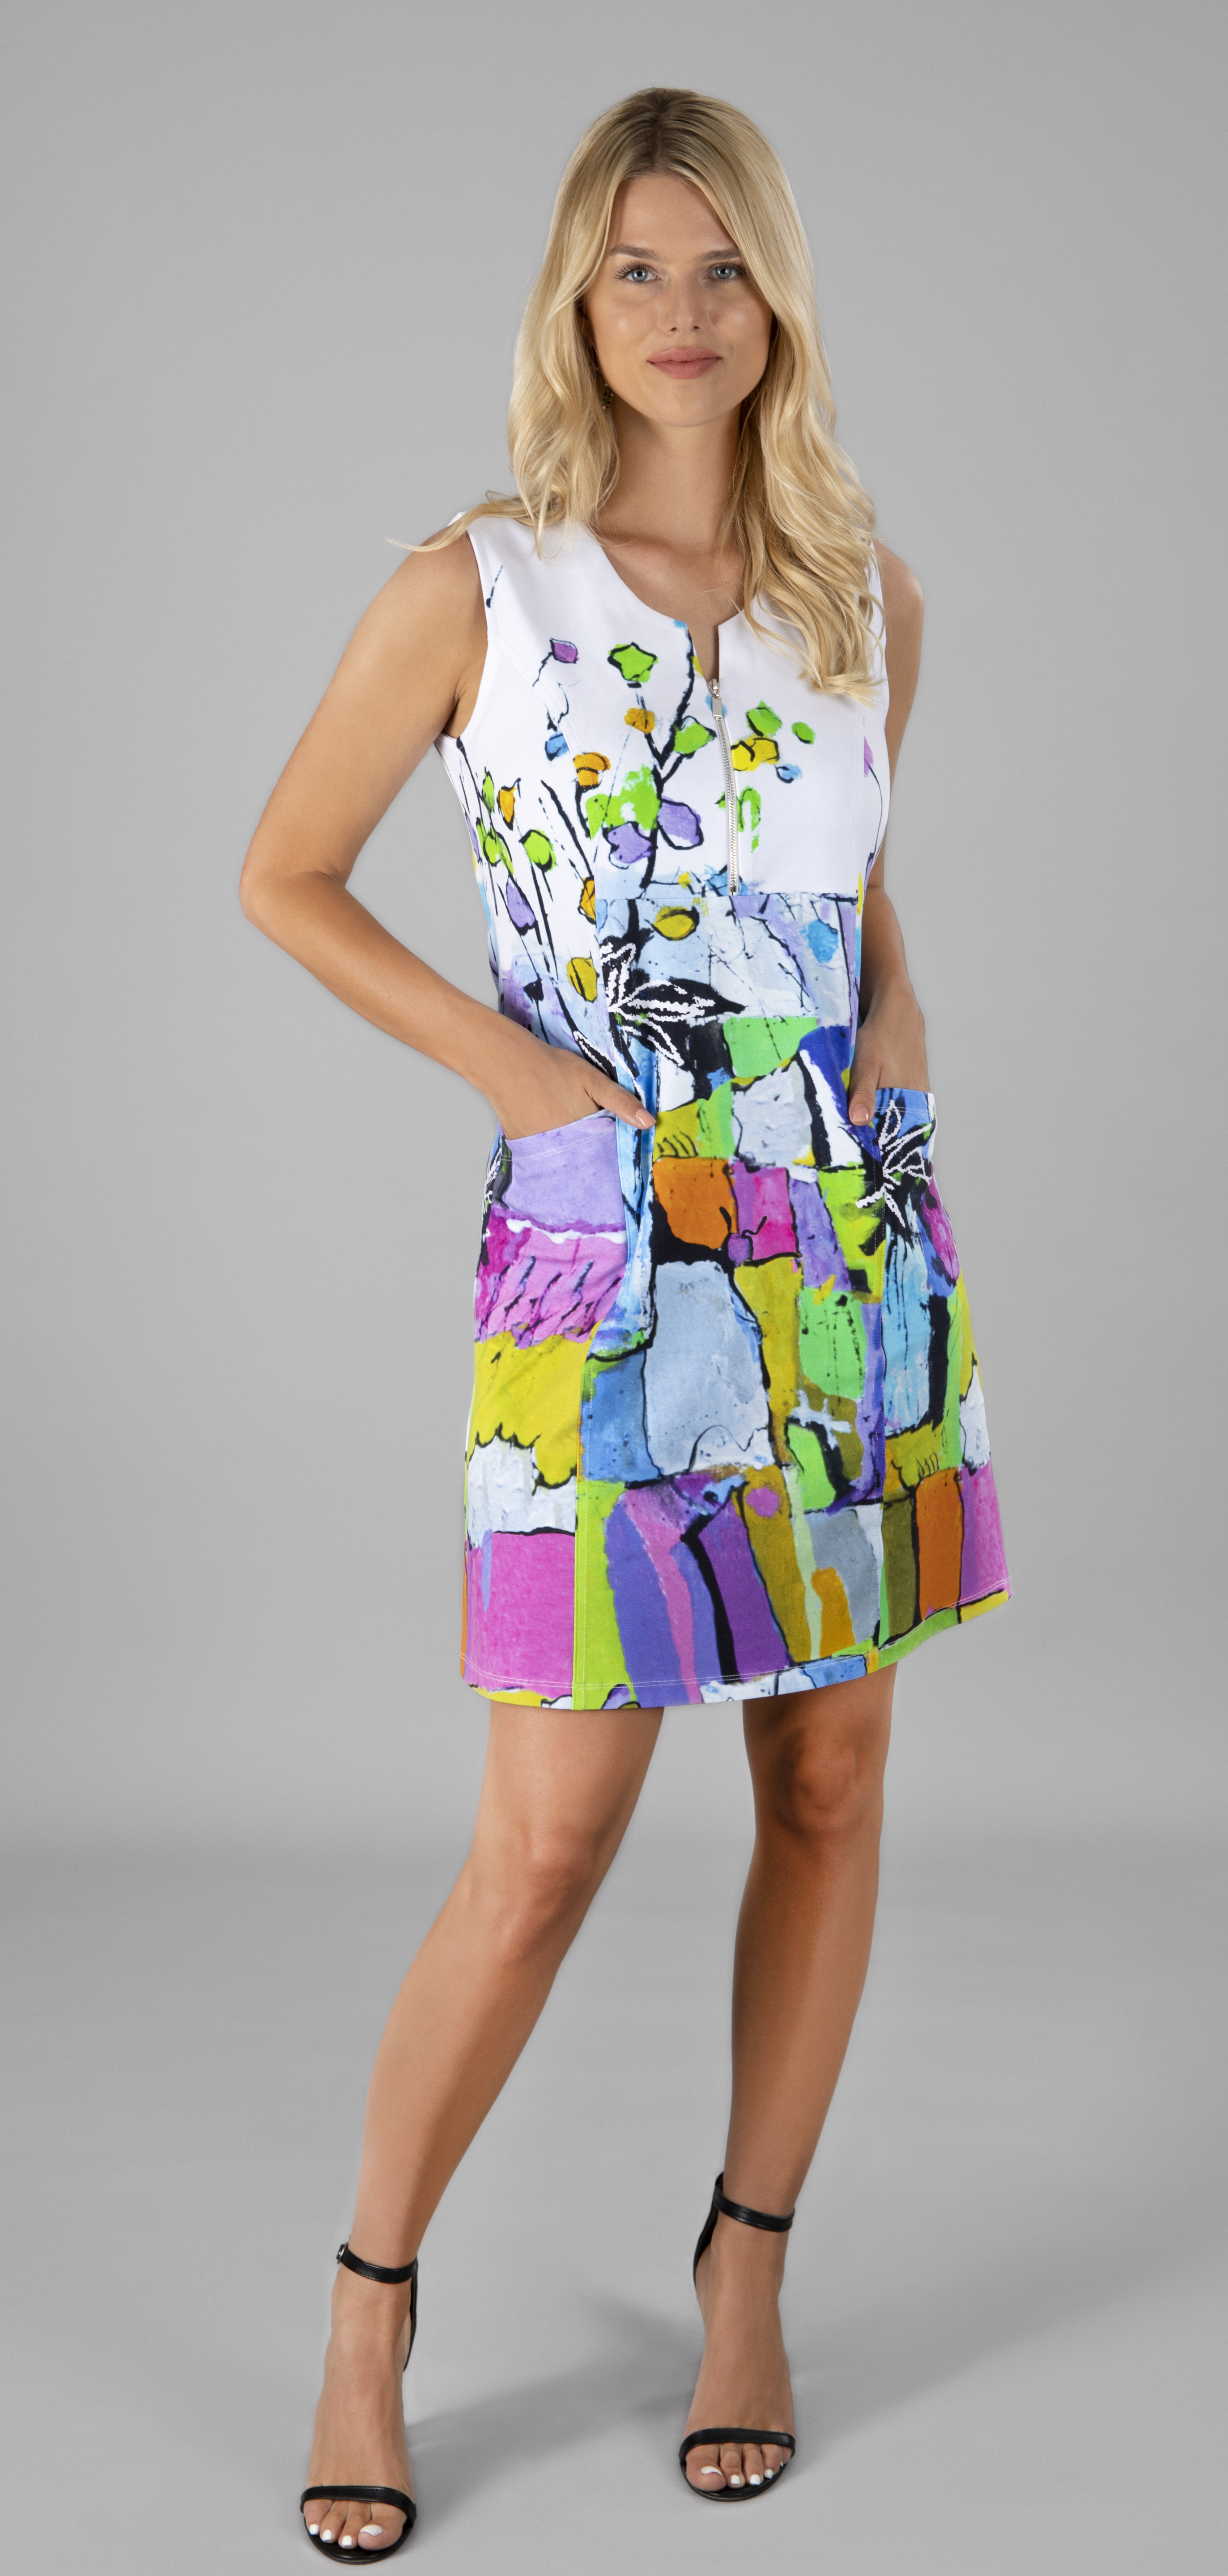 Simply Art Dolcezza: Still Life For A Wedding Party Pocket Dress Dolcezza_SimplyArt_21666